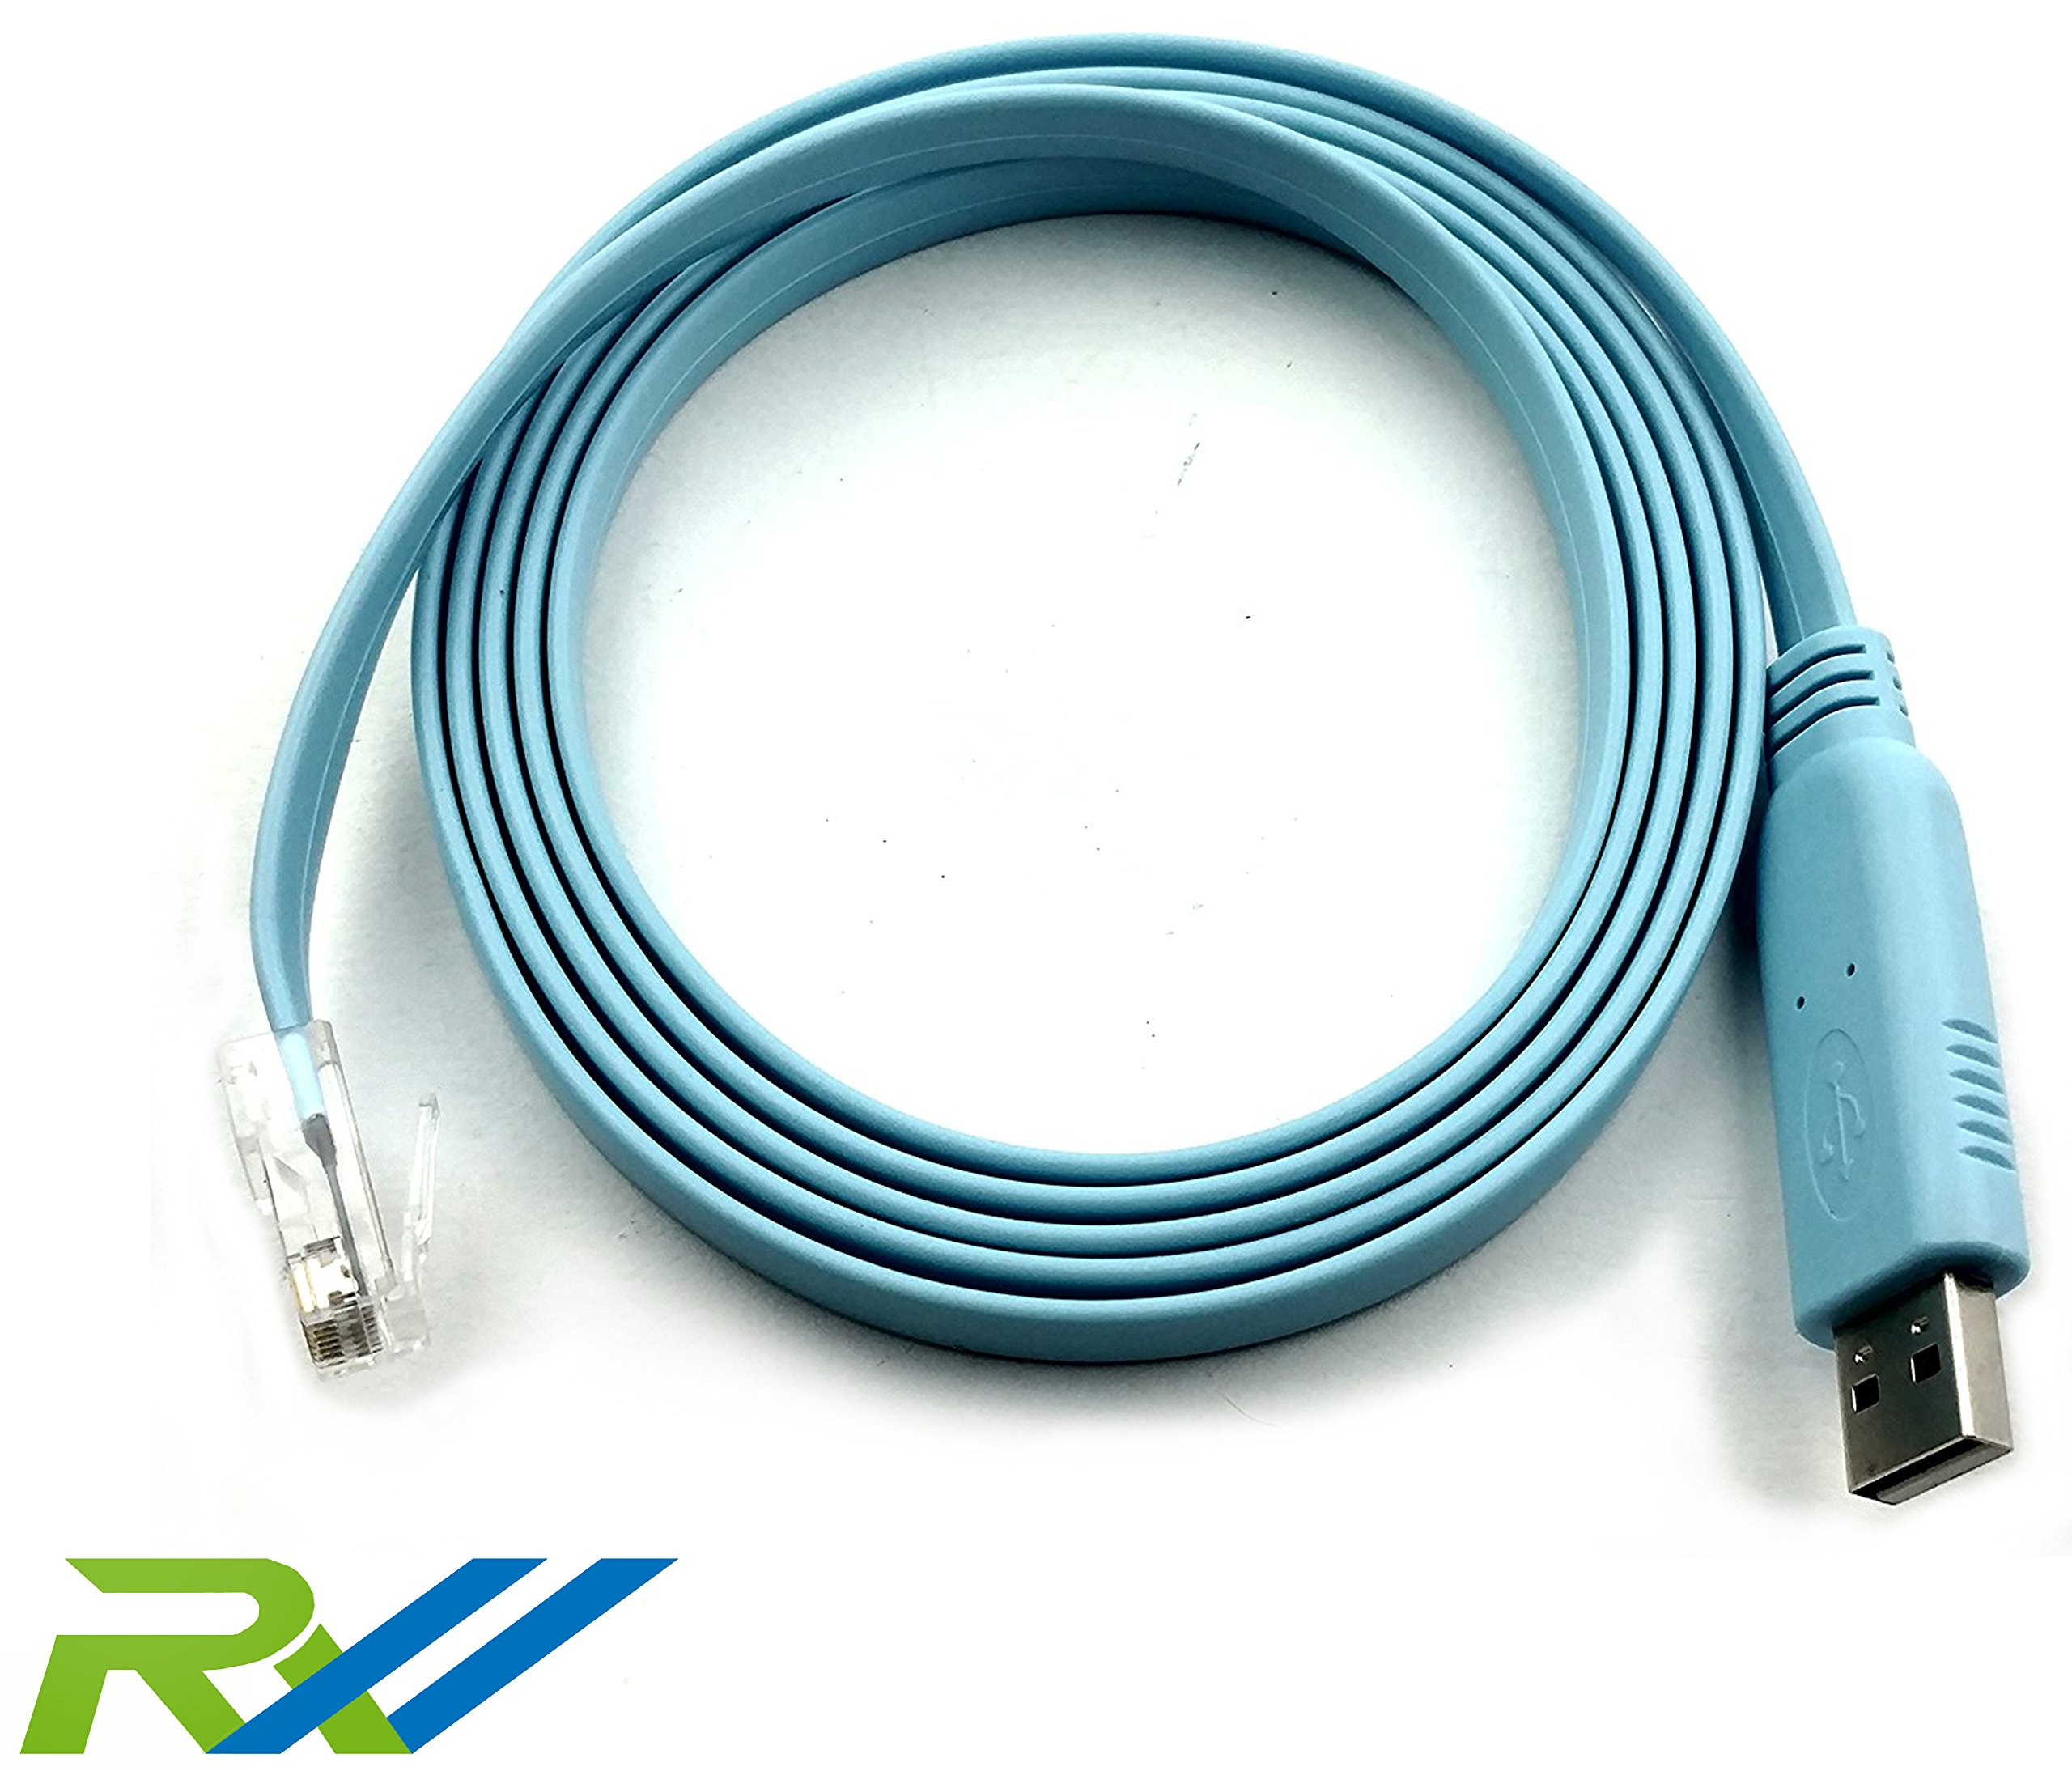 Cisco Compatible Console Cable, 6ft, FTDI USB to RJ45 Console Cable / Windows 7, 8 / Vista / MAC / Linux / RS232 Switch Router